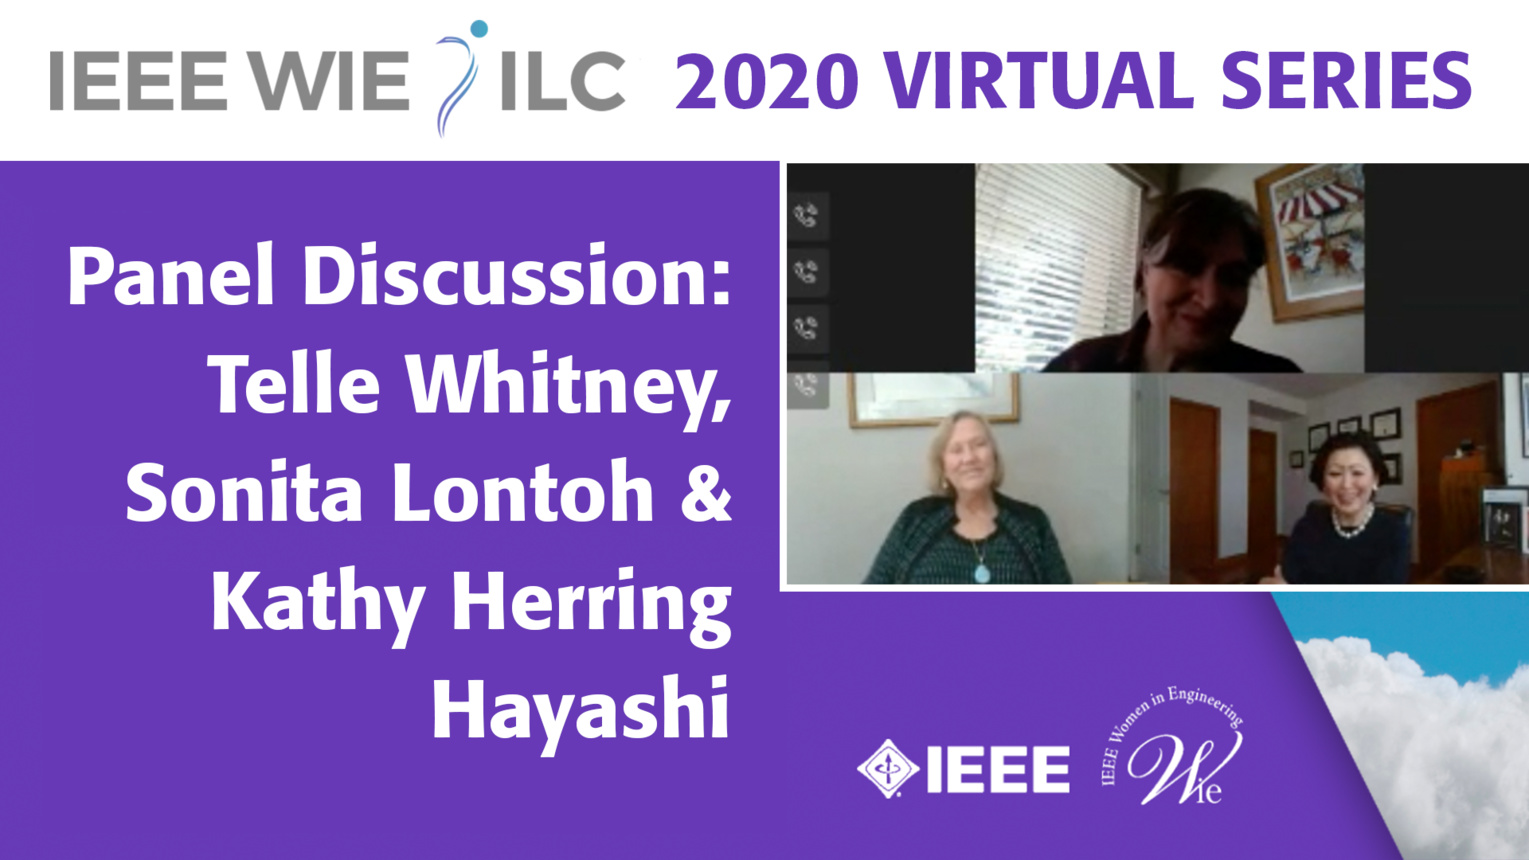 Telle Whitney, Sonita Lontoh, and Kathy Herring Hayashi - IEEE WIE ILC 2020 Virtual Series